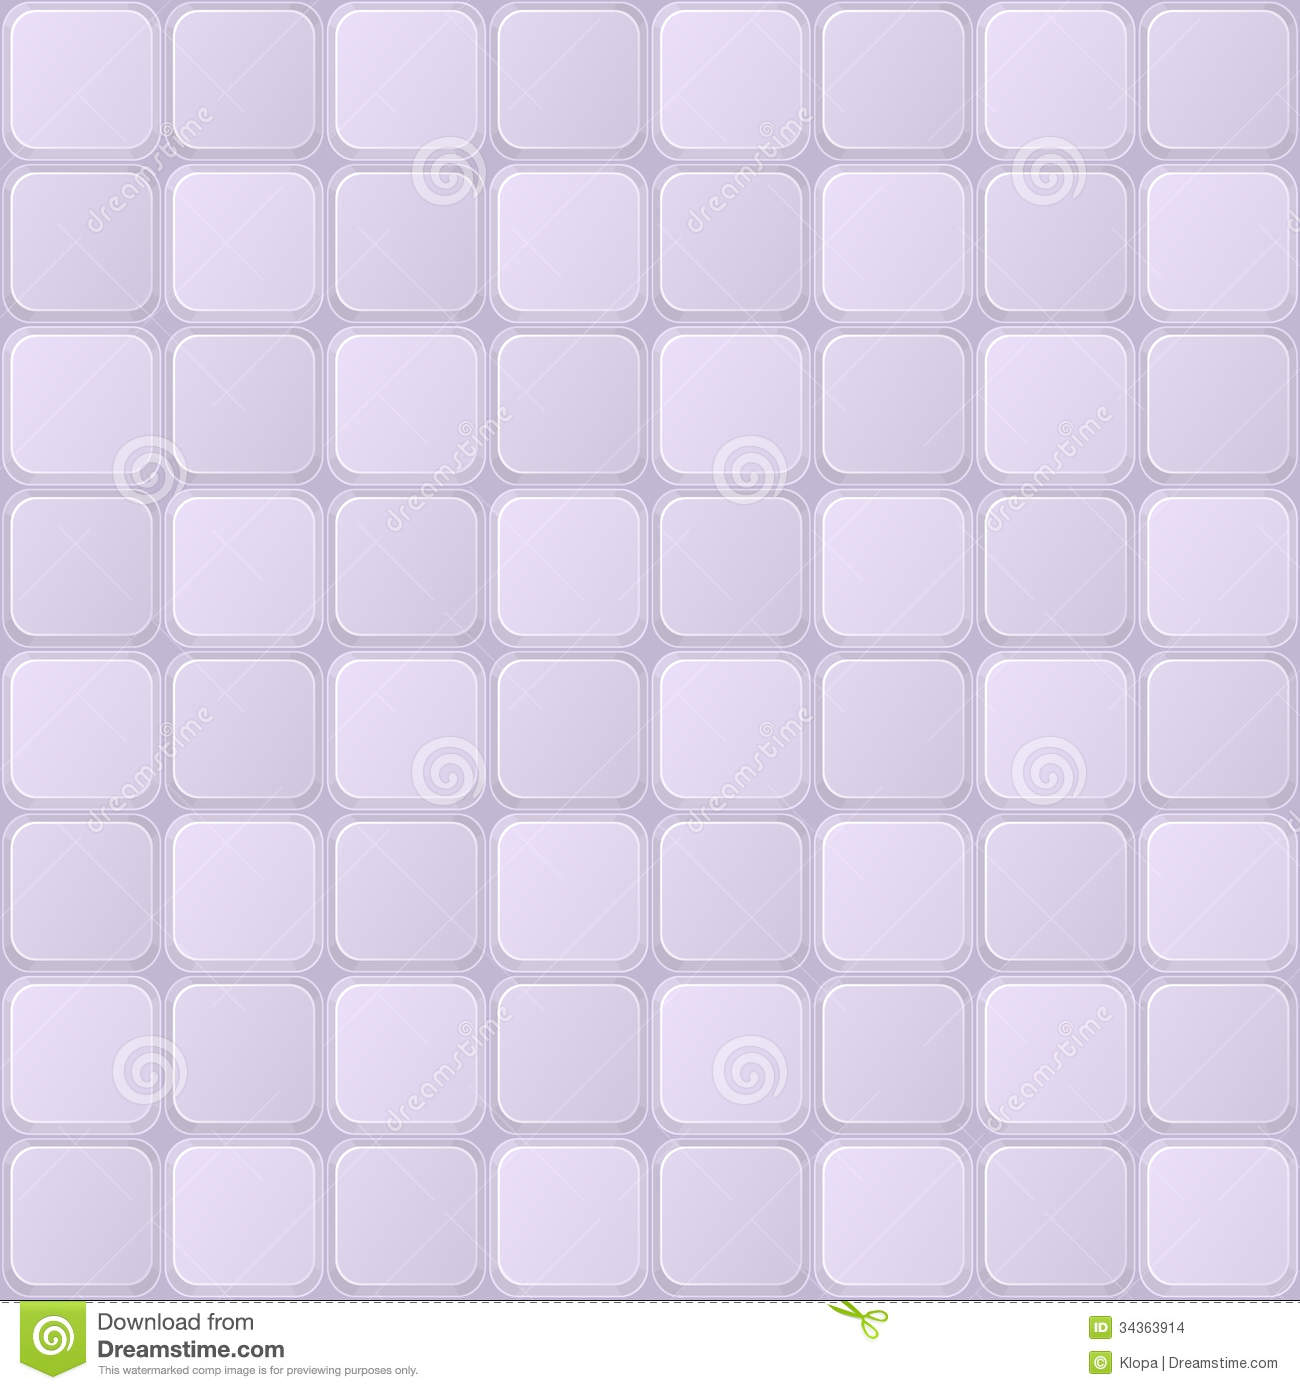 Tile Seamless Pattern With Shiny Square Elements Stock